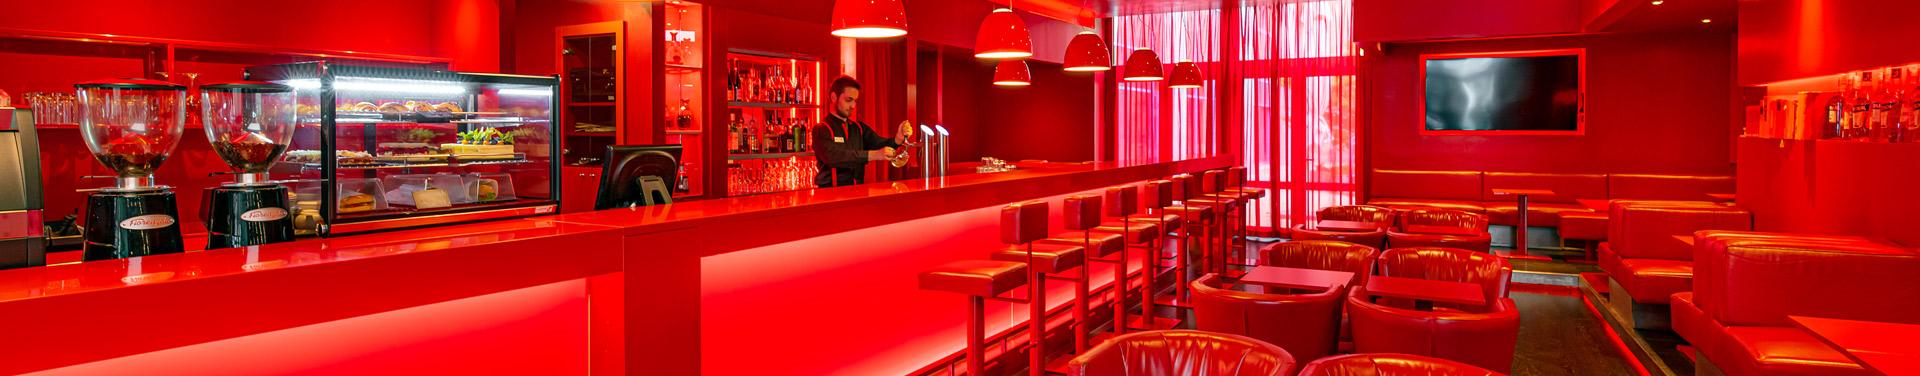 Red_bar_B_NH_prague-city_184_web